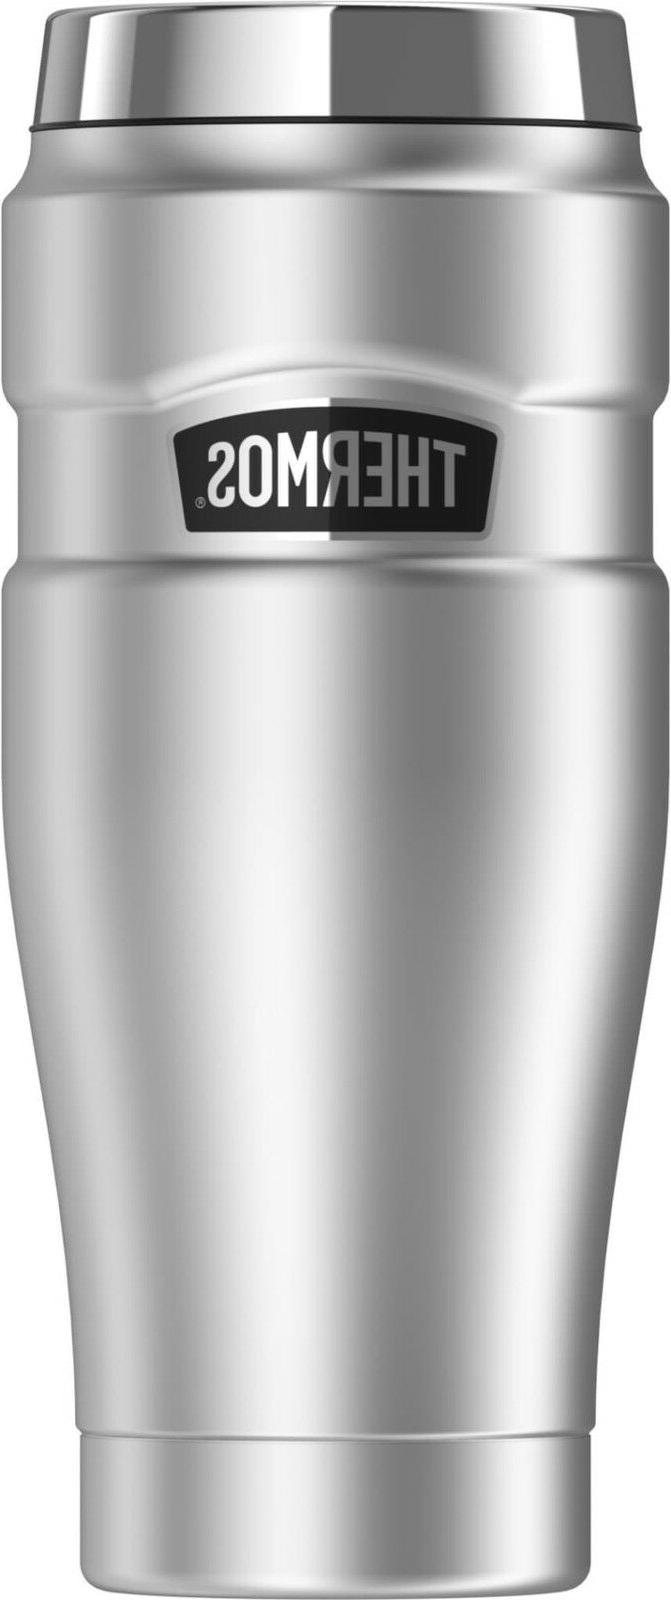 Thermos Stainless Insulated Tumbler Mug Cup OZ